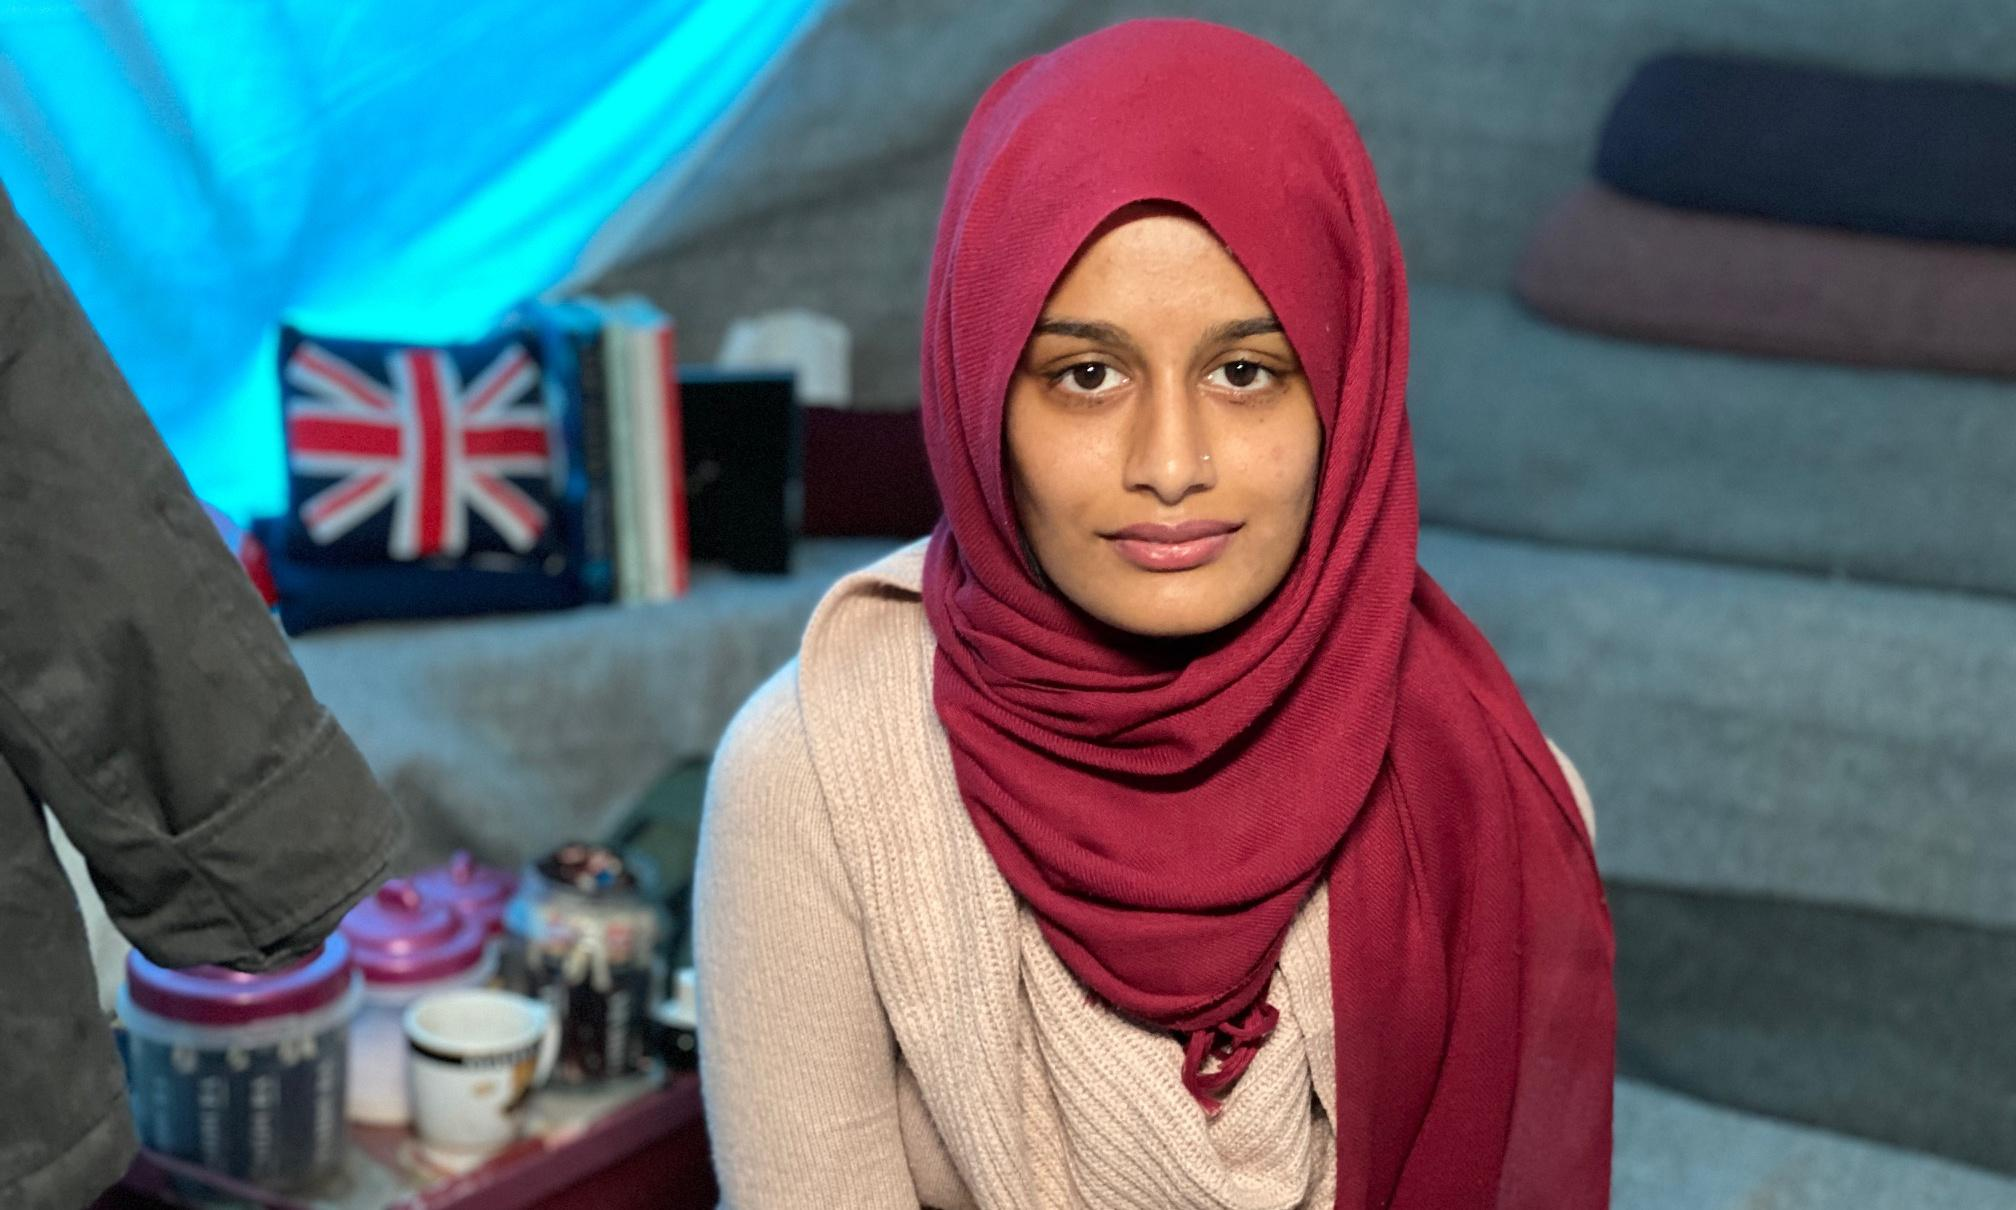 Shamima Begum says her 'world fell apart' after losing UK citizenship